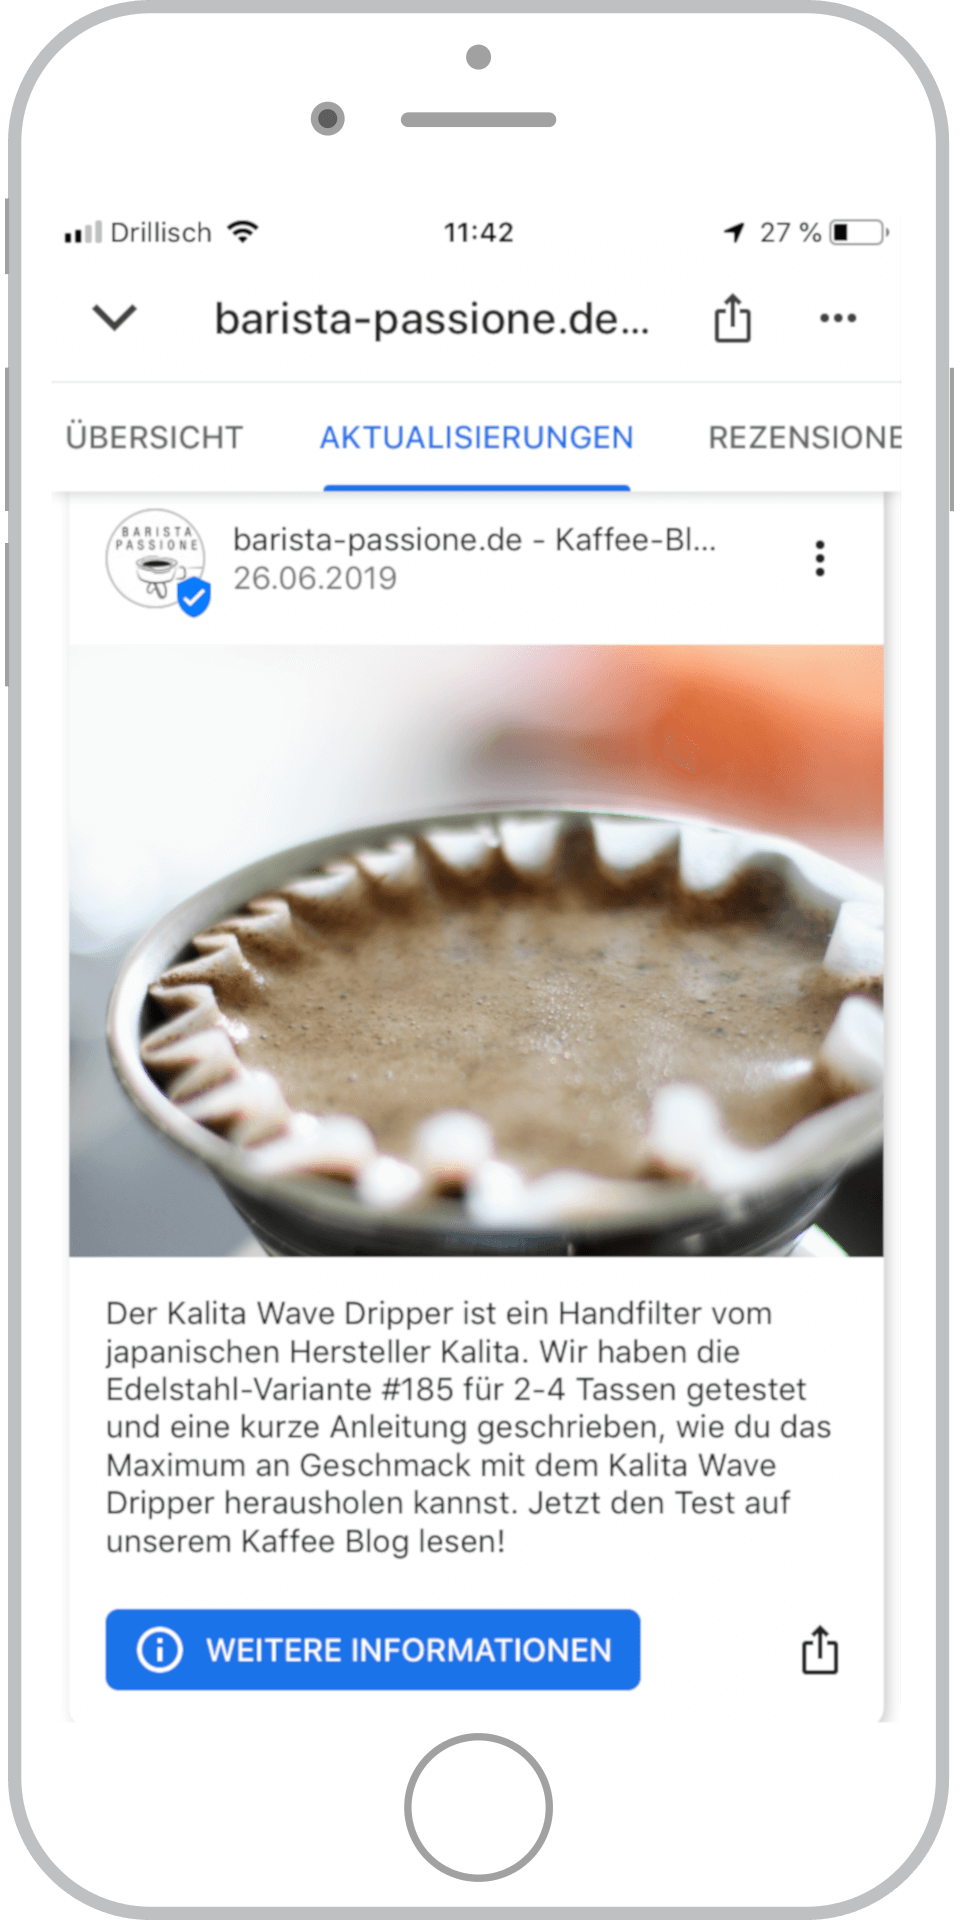 Referenz Barista Passione Google My Business